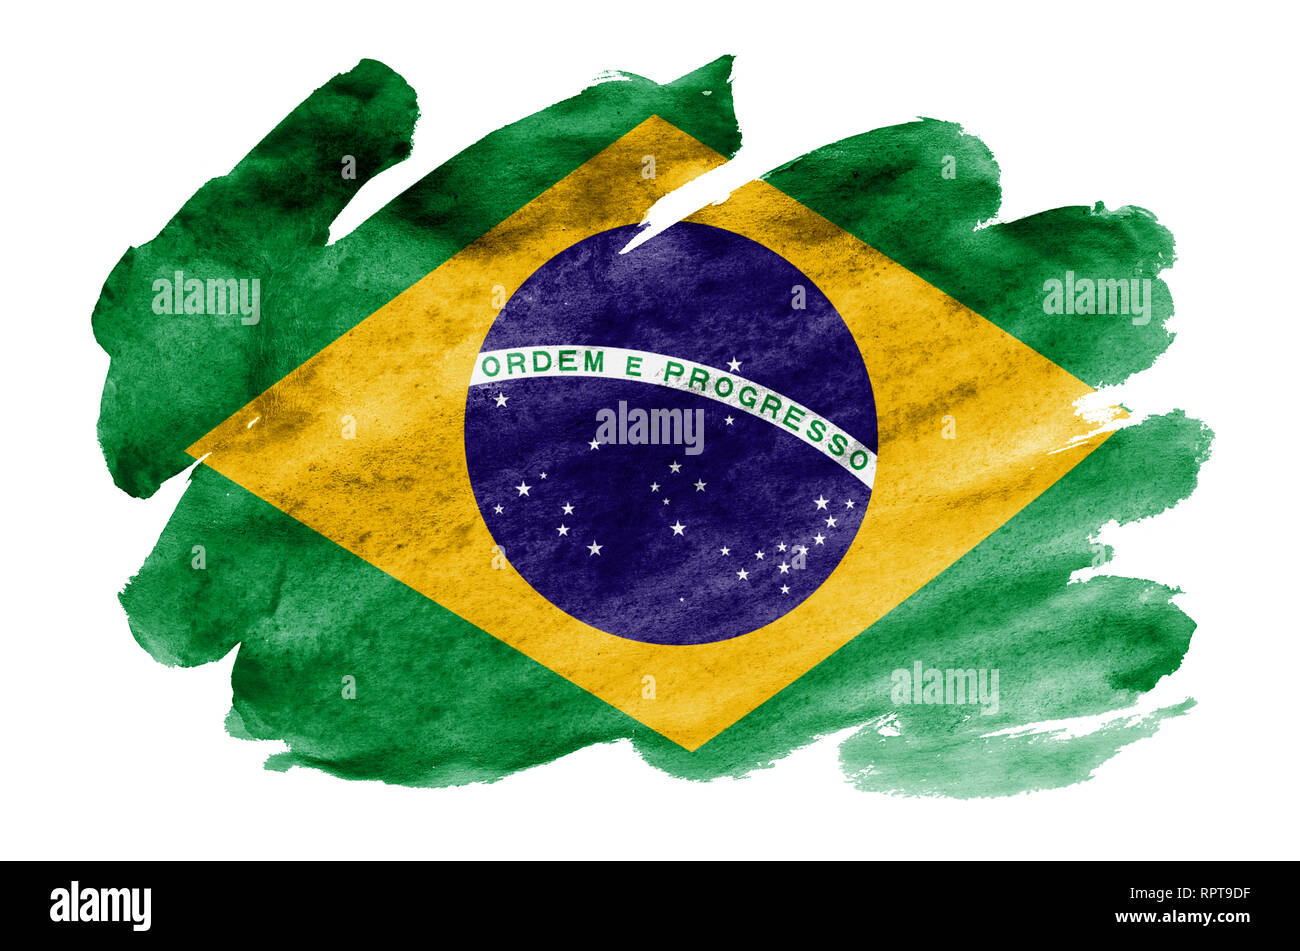 Brazil flag  is depicted in liquid watercolor style isolated on white background. Careless paint shading with image of national flag. Independence Day - Stock Image